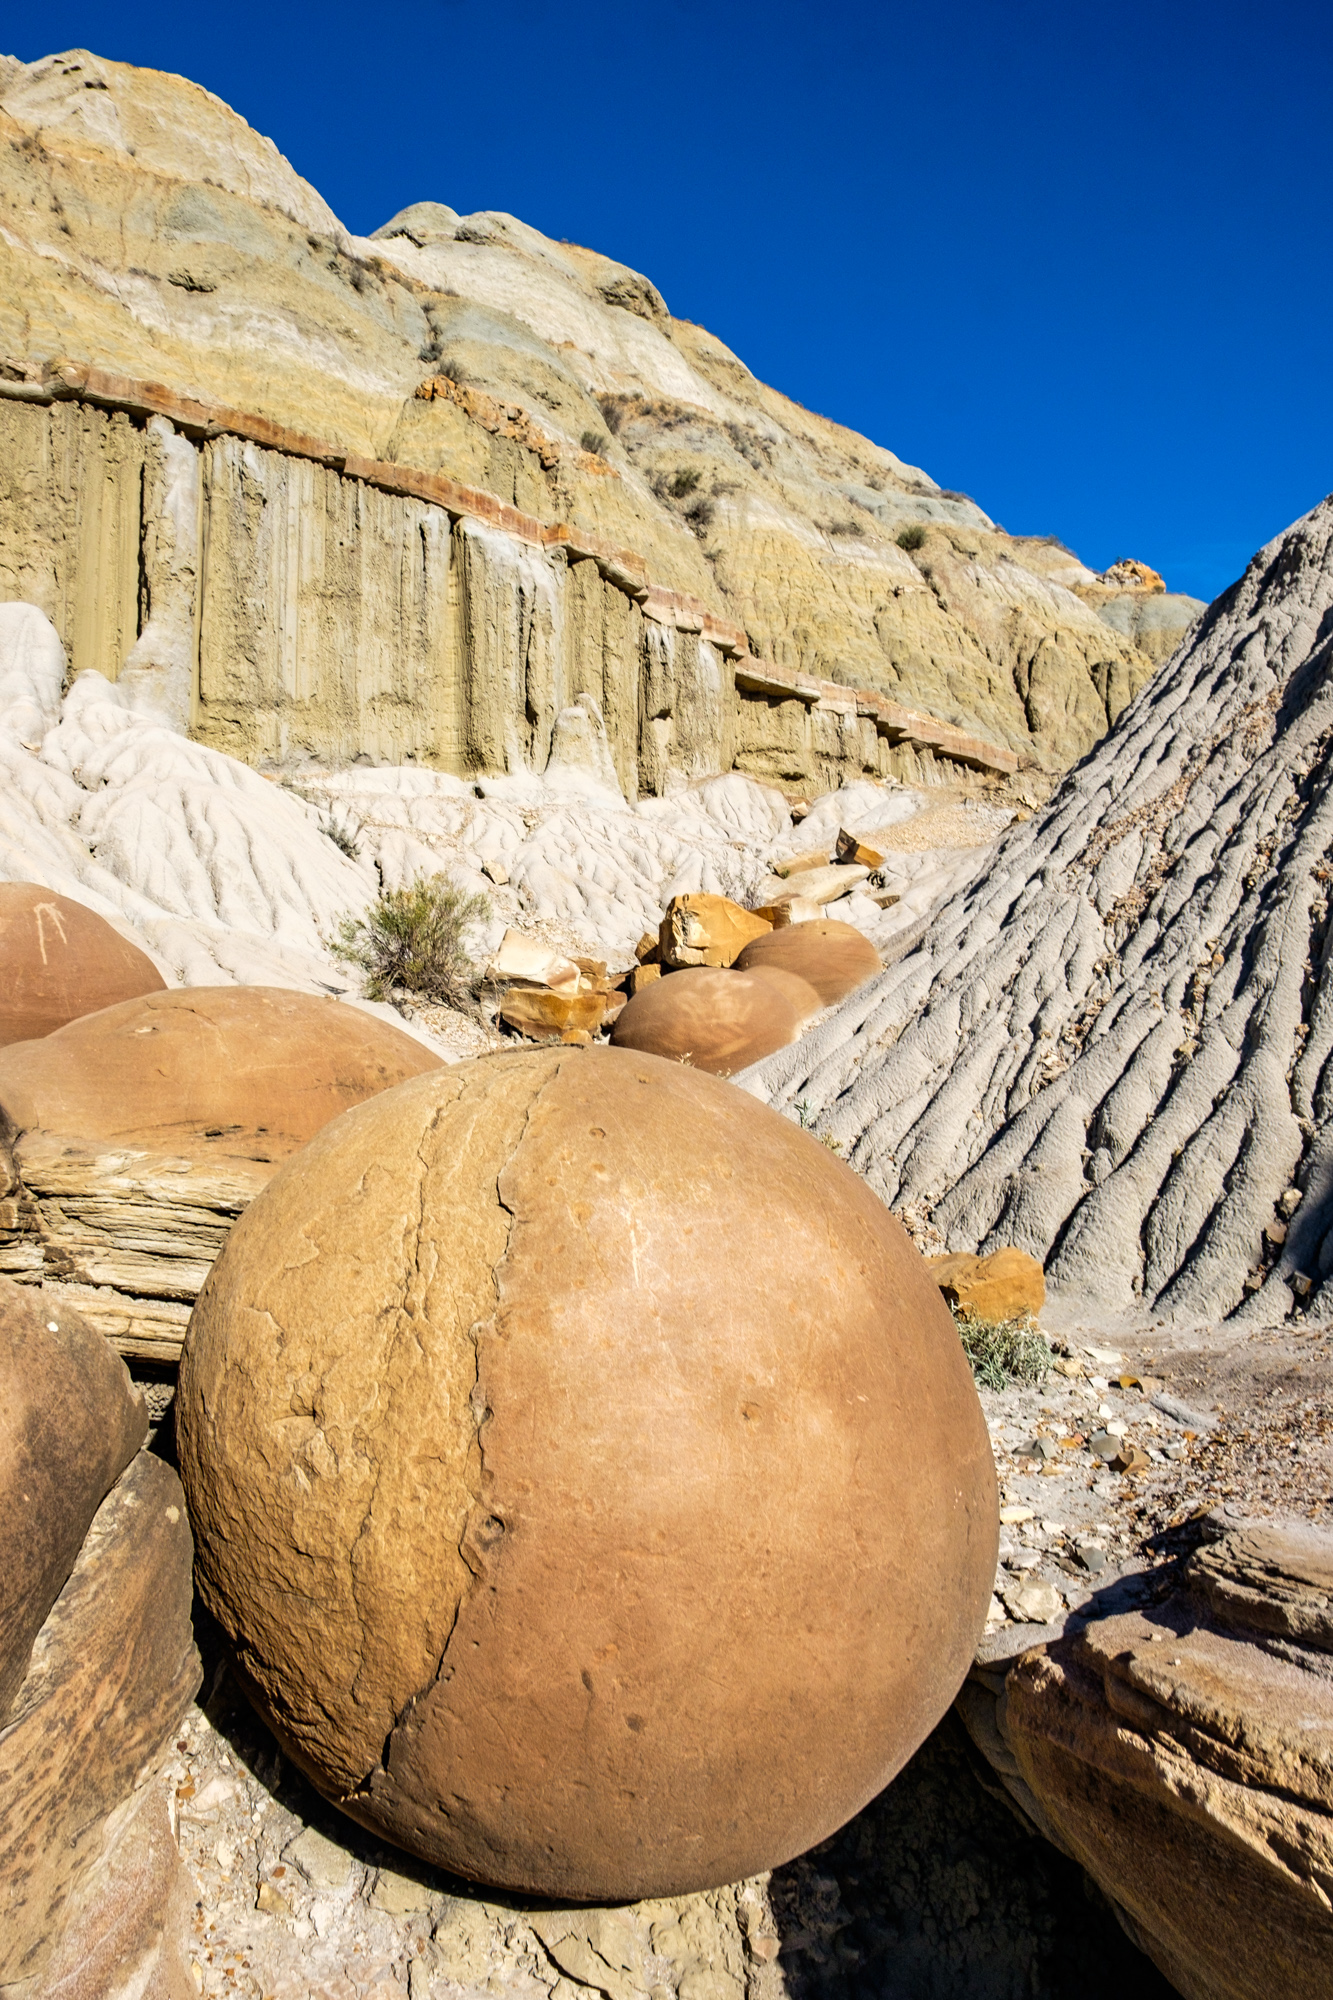 Cannonball concretions....a very unique geological formation in the park.